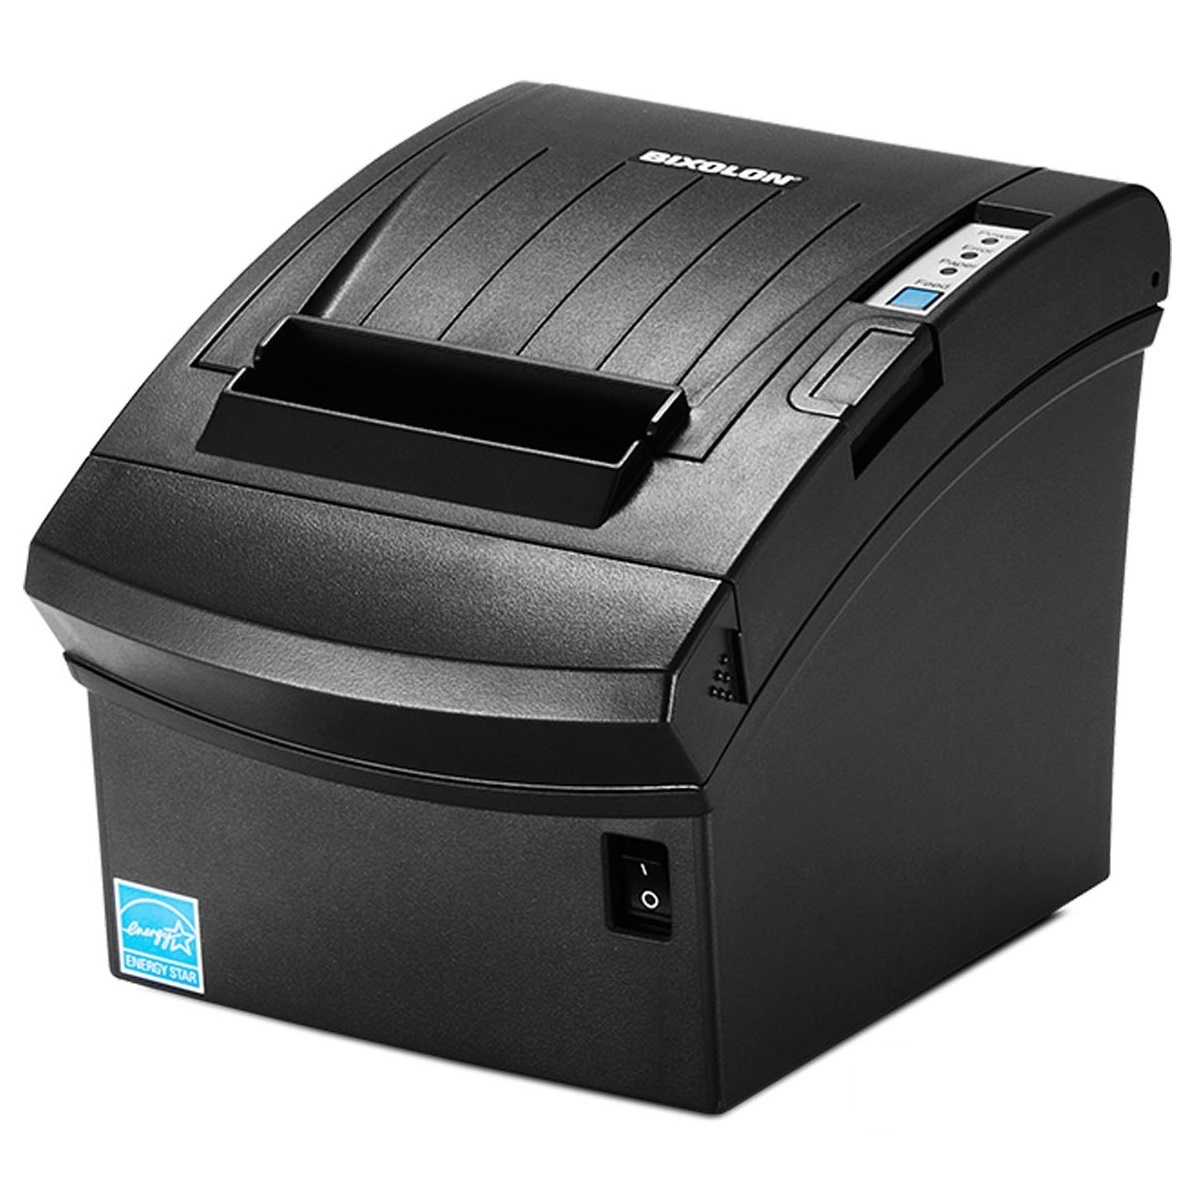 Bixolon Srp350 Plus III Usb+ser+eth Thermal Receipt Printer